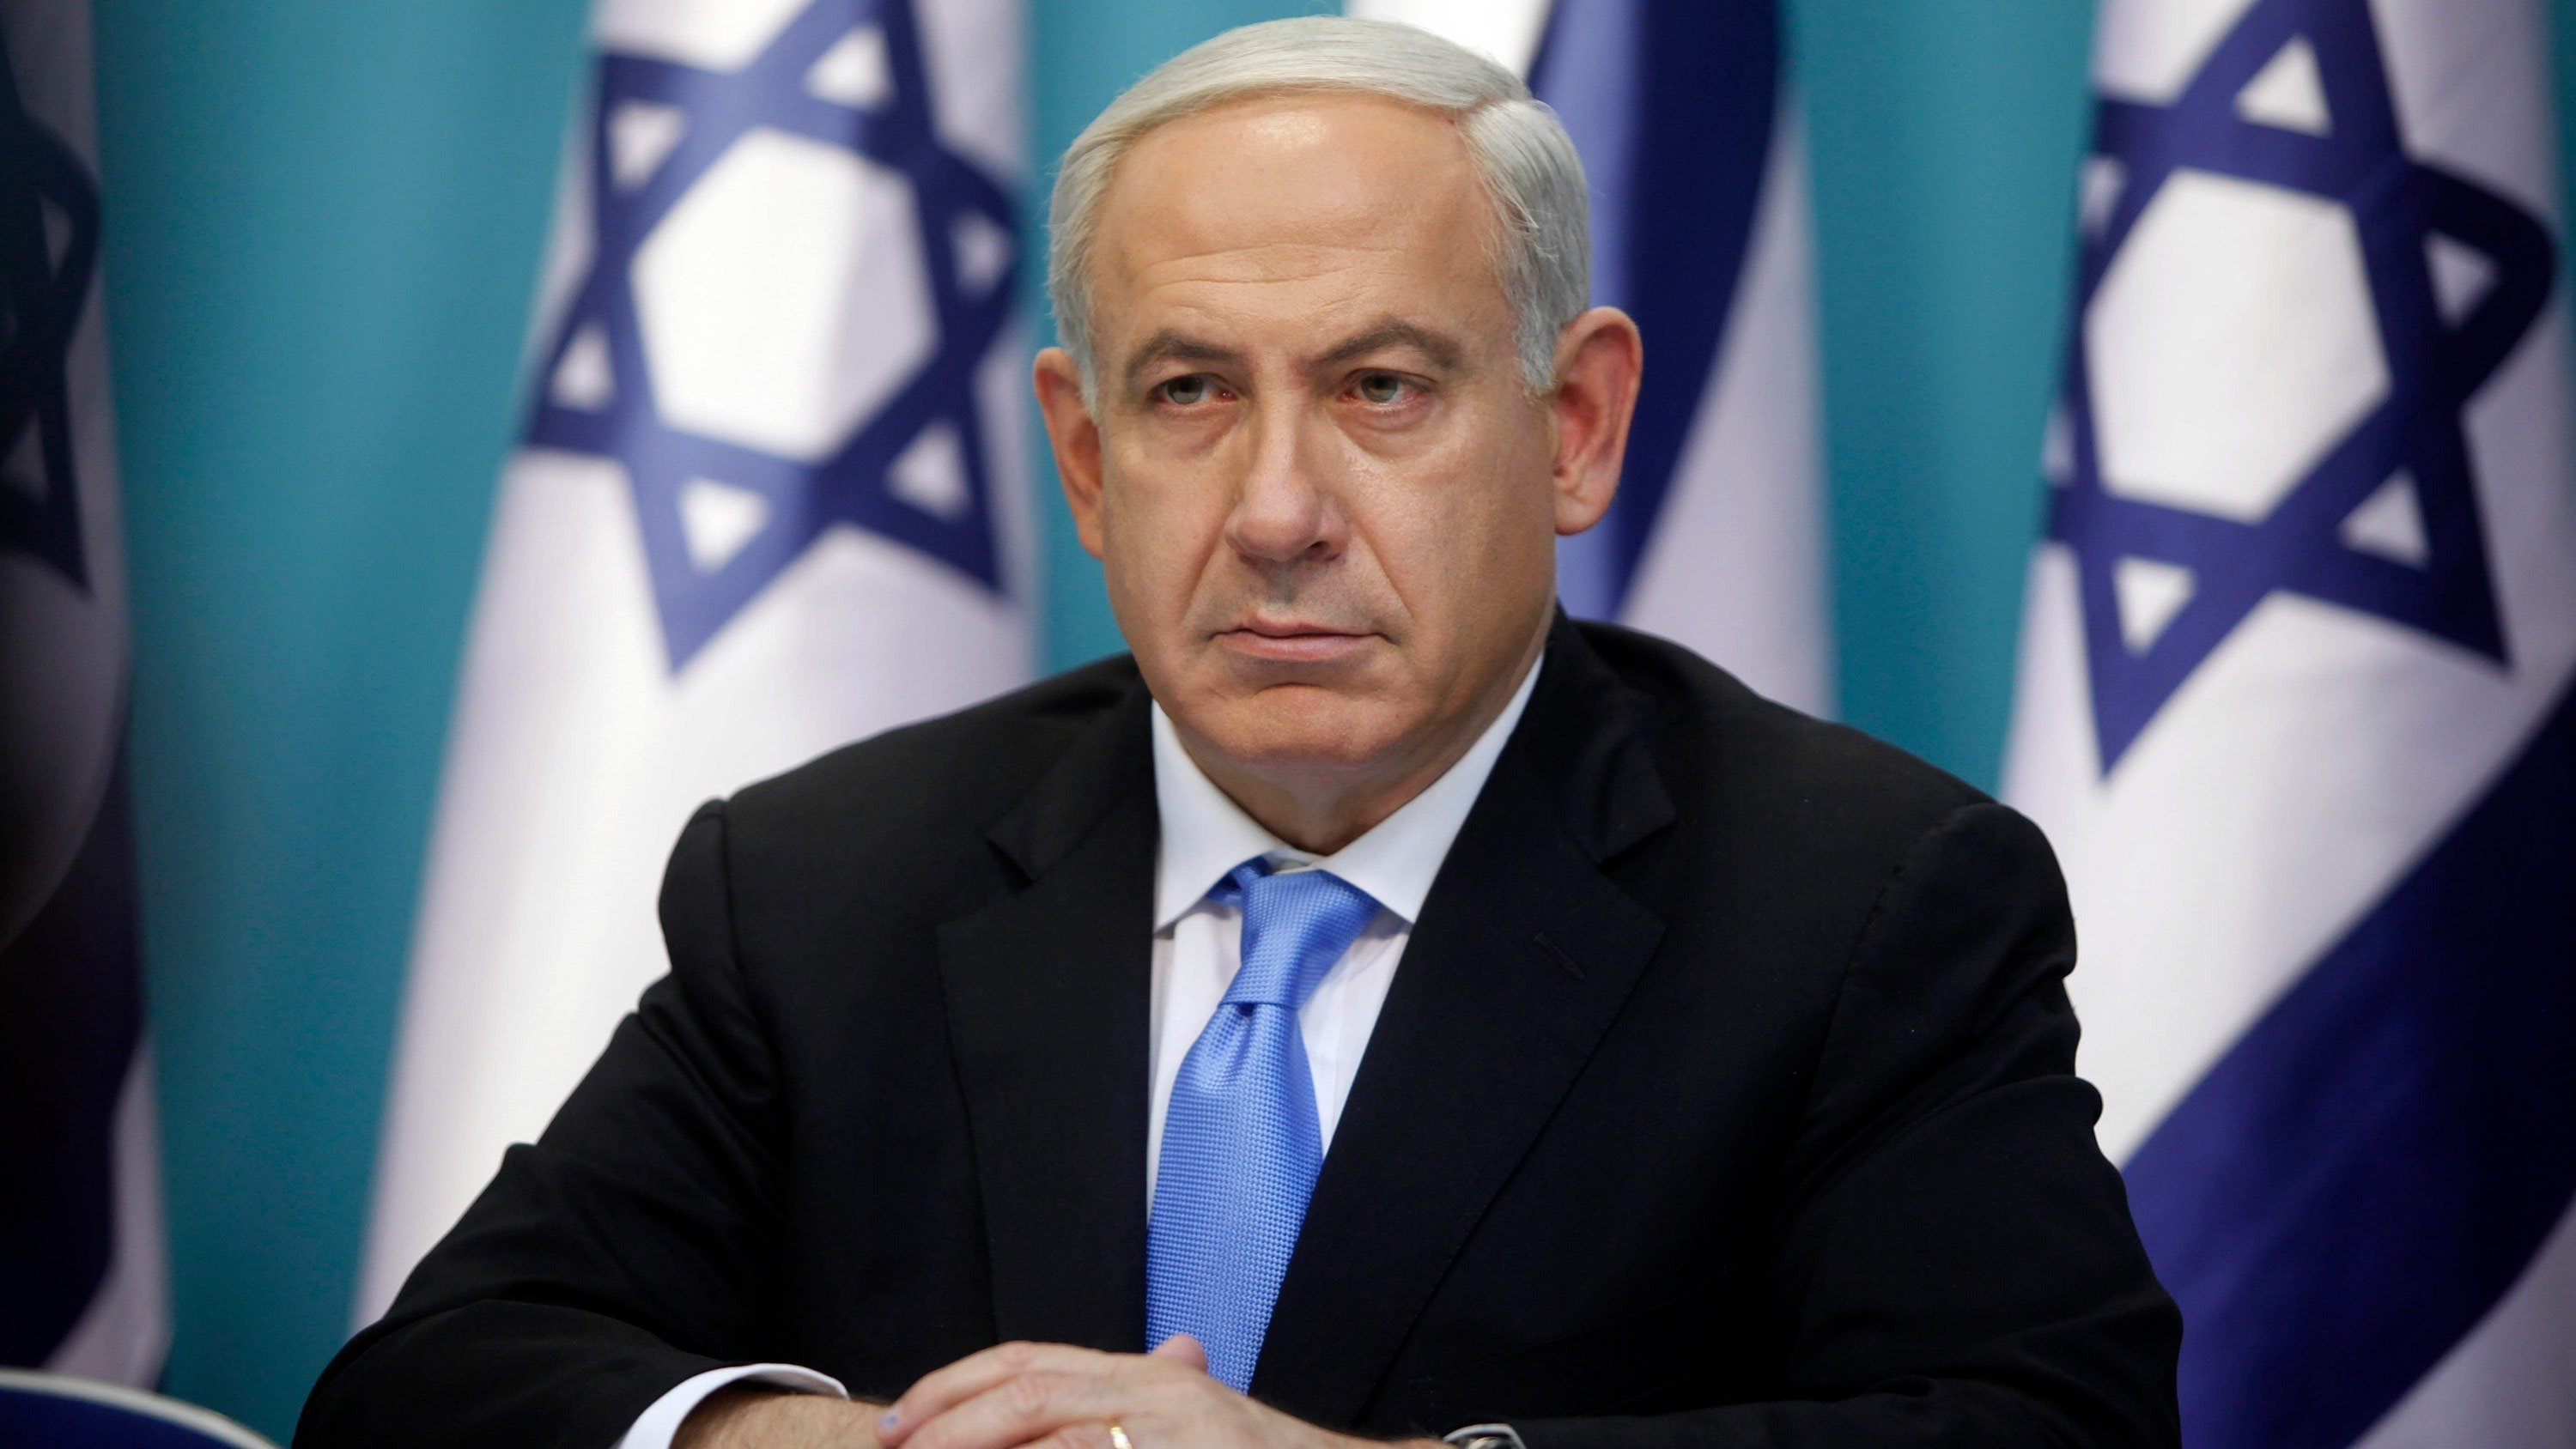 """Israeli police said Tuesday there is """"sufficient evidence"""" to indict Prime Minister Benjamin Netanyahu on criminal charges in two corruption cases."""